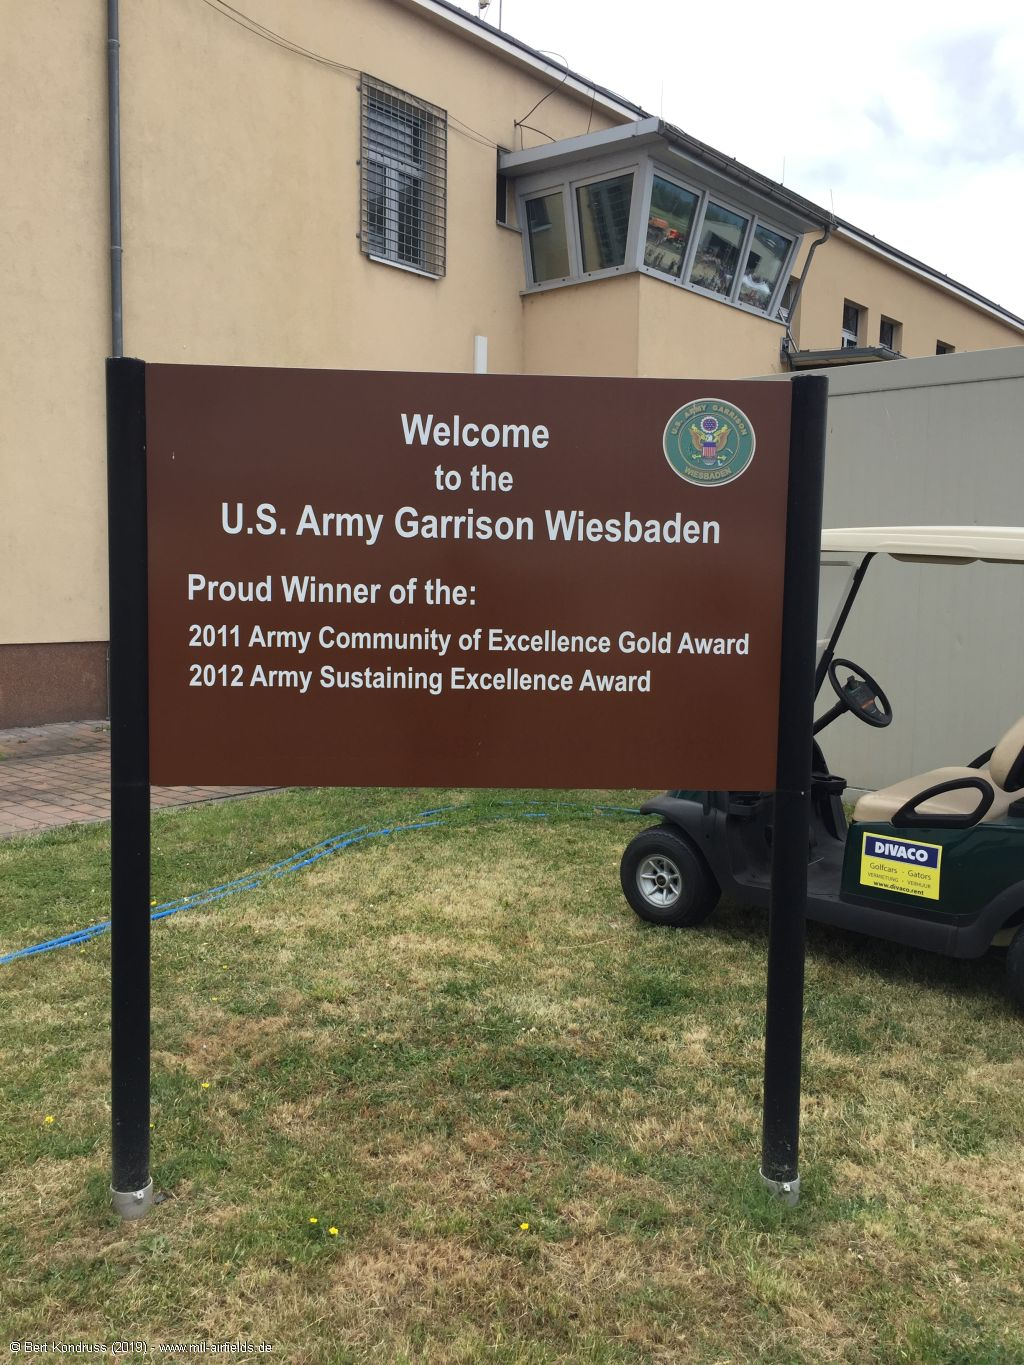 Tafel: Welcome to the U.S. Army Garrison Wiesbaden